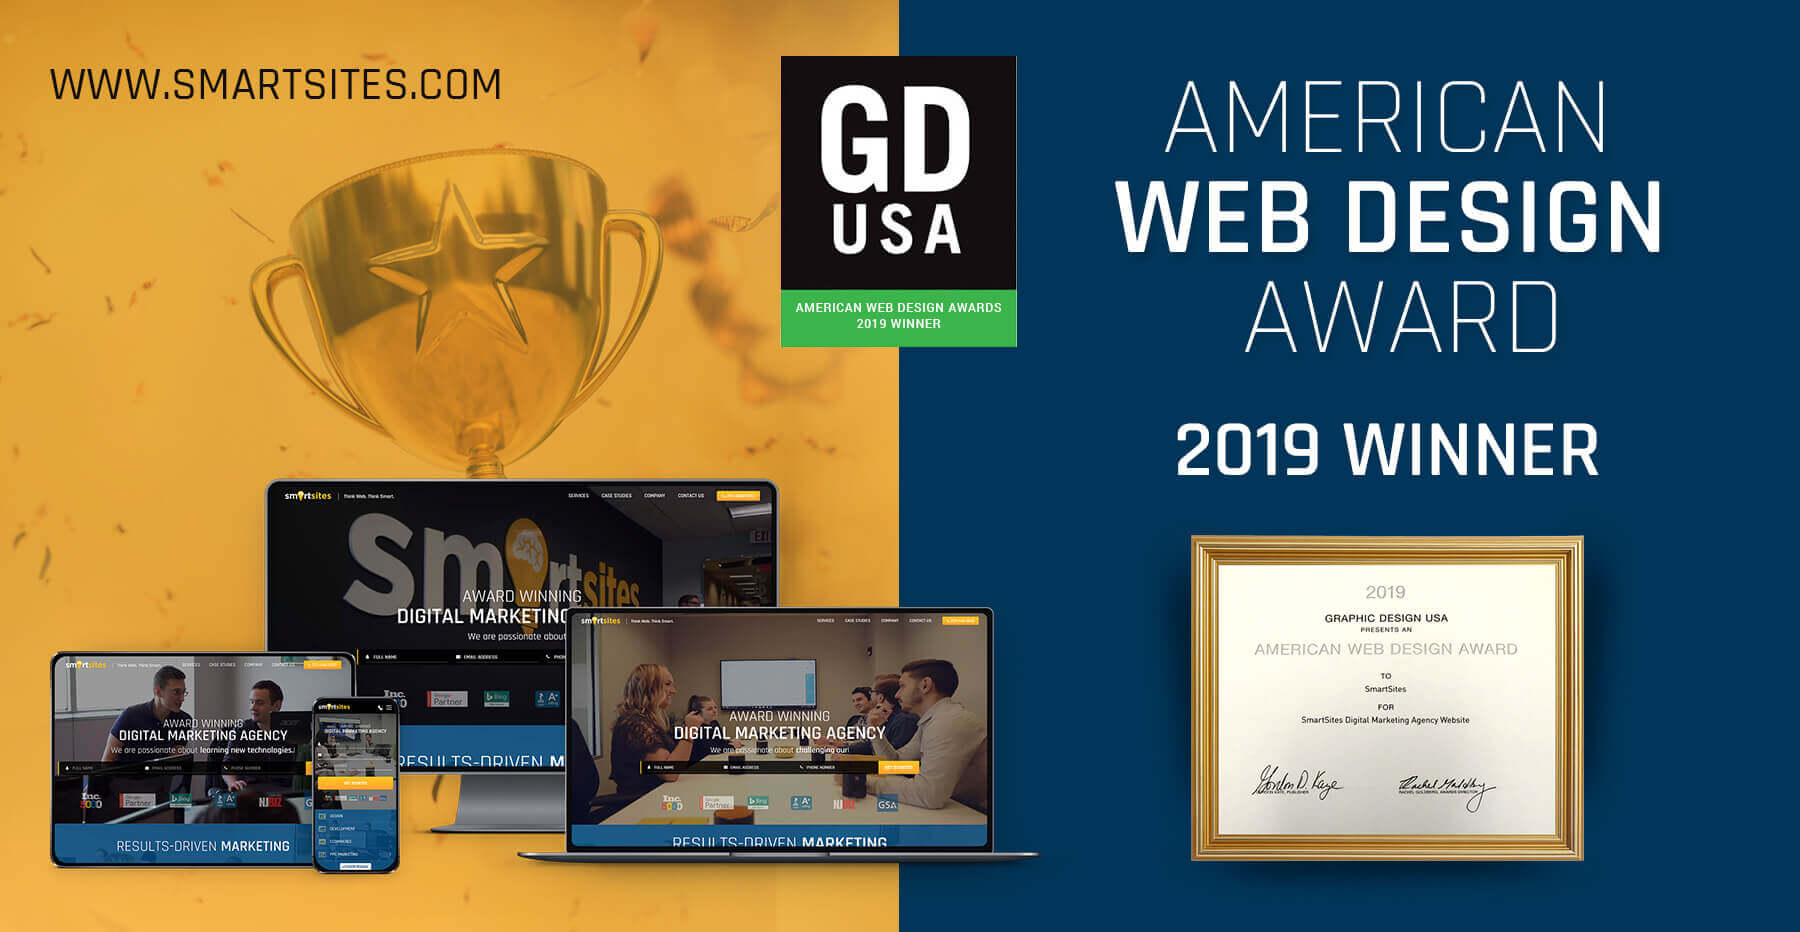 SmartSites Wins Graphic Design USA (GDUSA) 2019 American Web Design Award